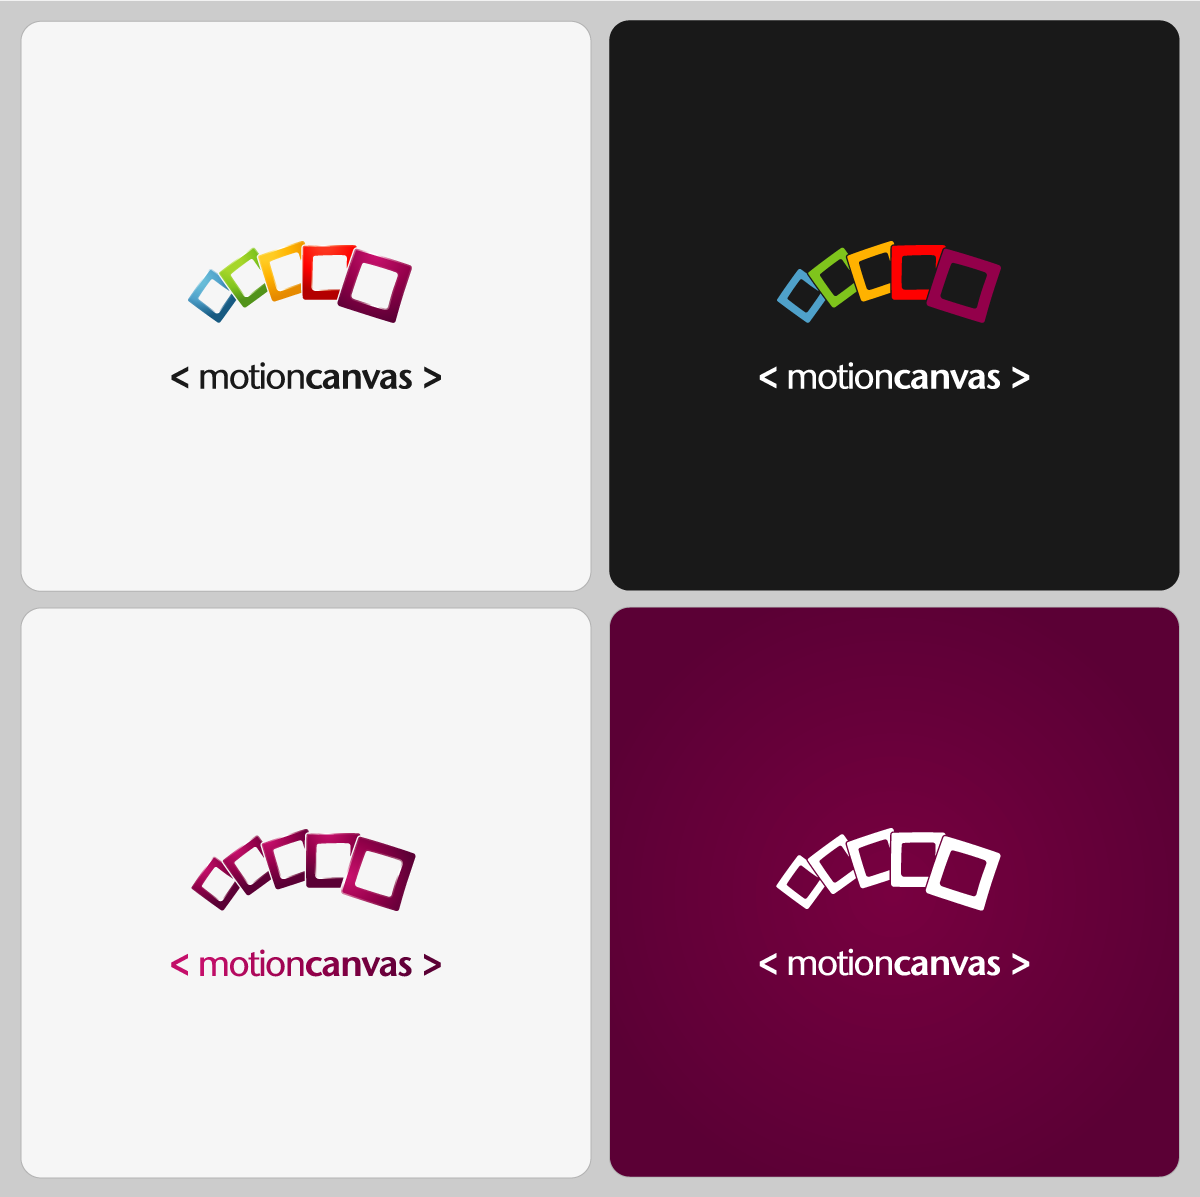 Motion Canvas needs a new logo